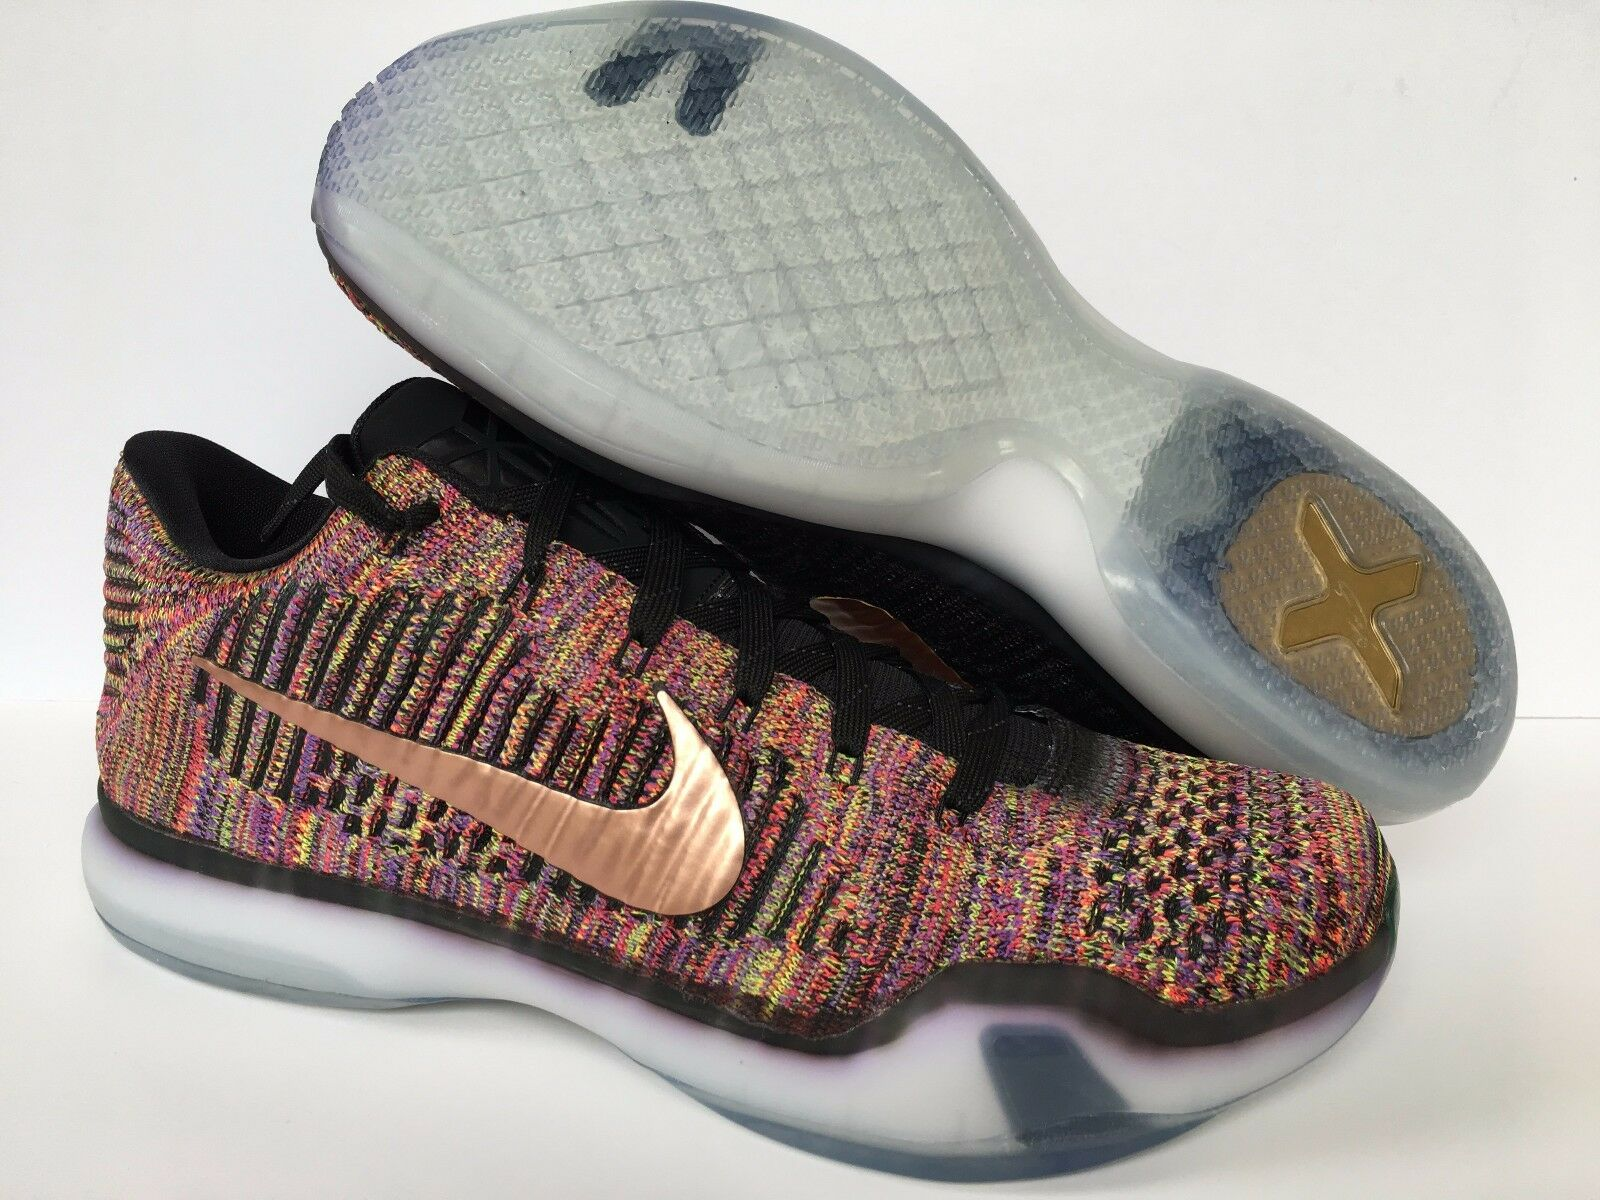 Nike Kobe X Elite Low iD Multi-color 802817-903 Men's Sz 11 New